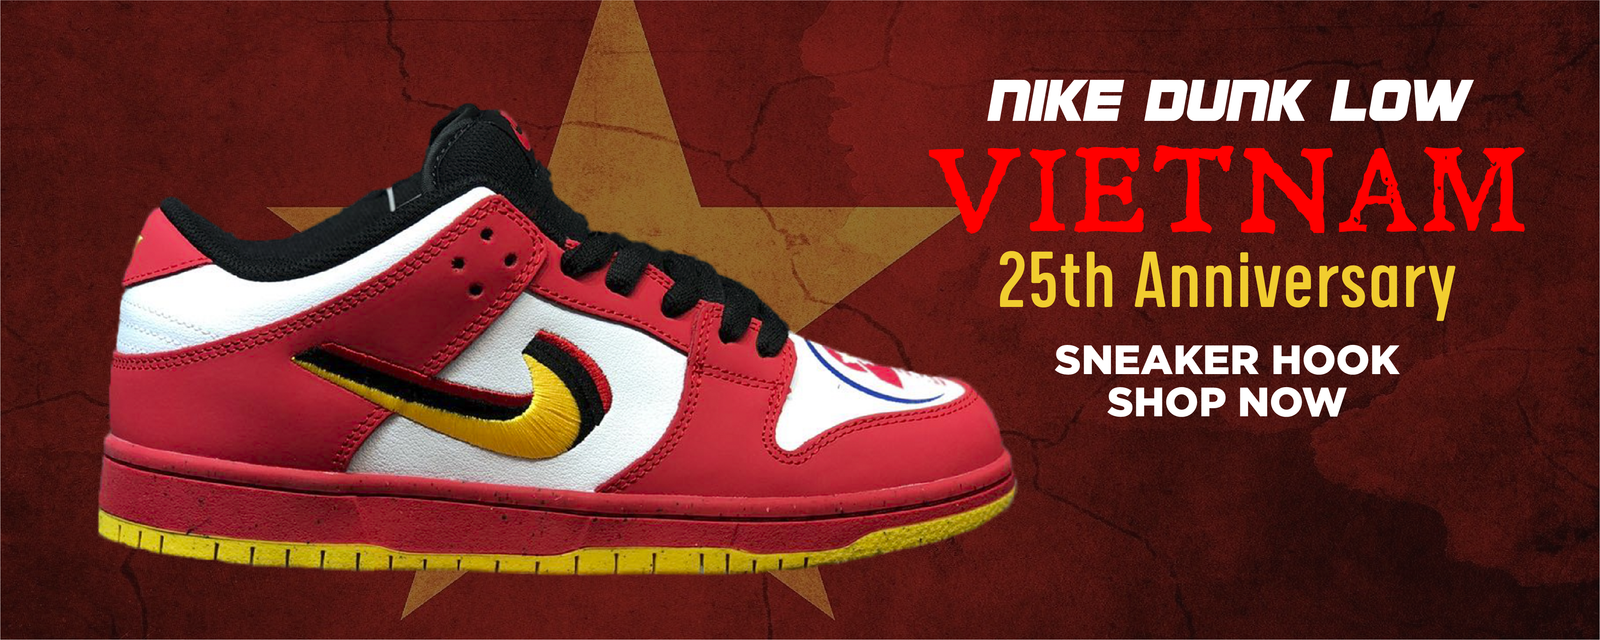 Dunk Low Vietnam 25th Anniversary Clothing to match Sneakers | Clothing to match Nike Dunk Low Vietnam 25th Anniversary Shoes